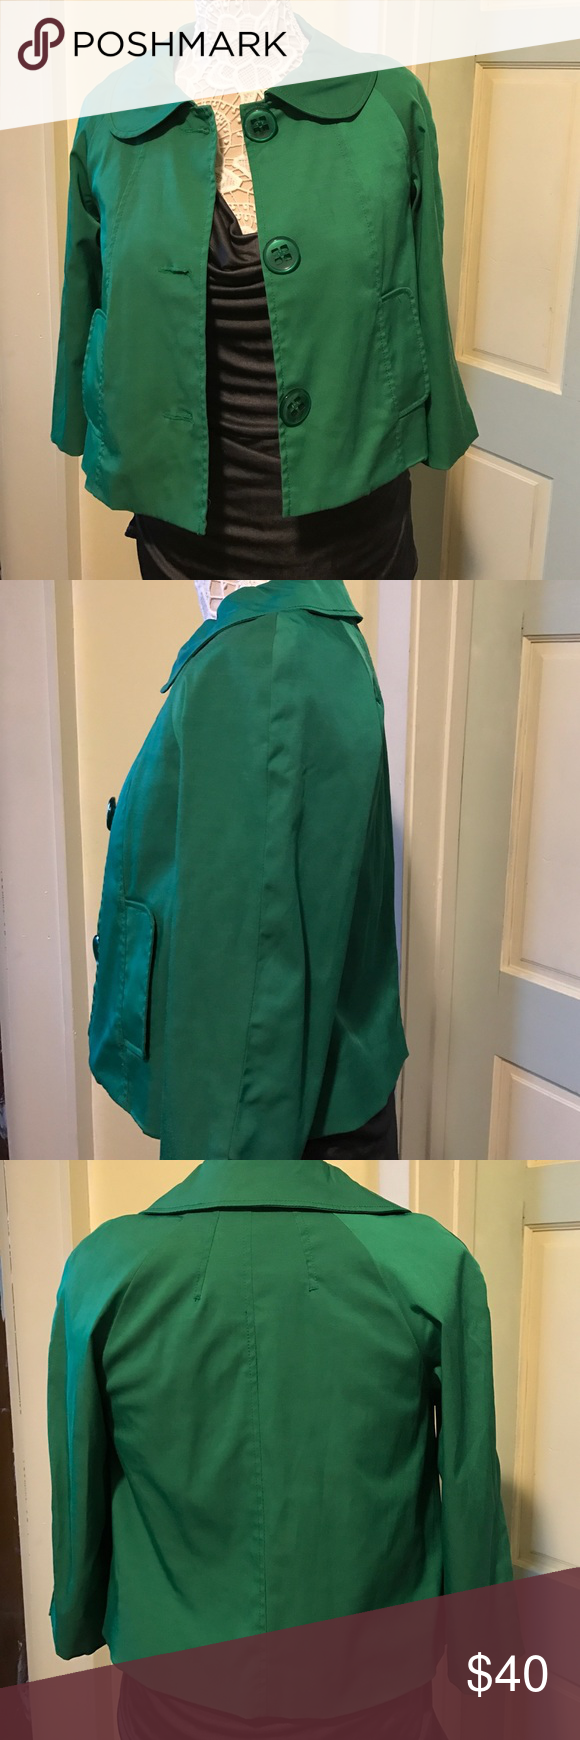 VERTIGO Paris Irish 🍀 coat This beautiful chic coat is prefect for the office, with spring around the corner you can make that outfit just right 3/4 length sleeve size XS Vertigo Paris Jackets & Coats Blazers